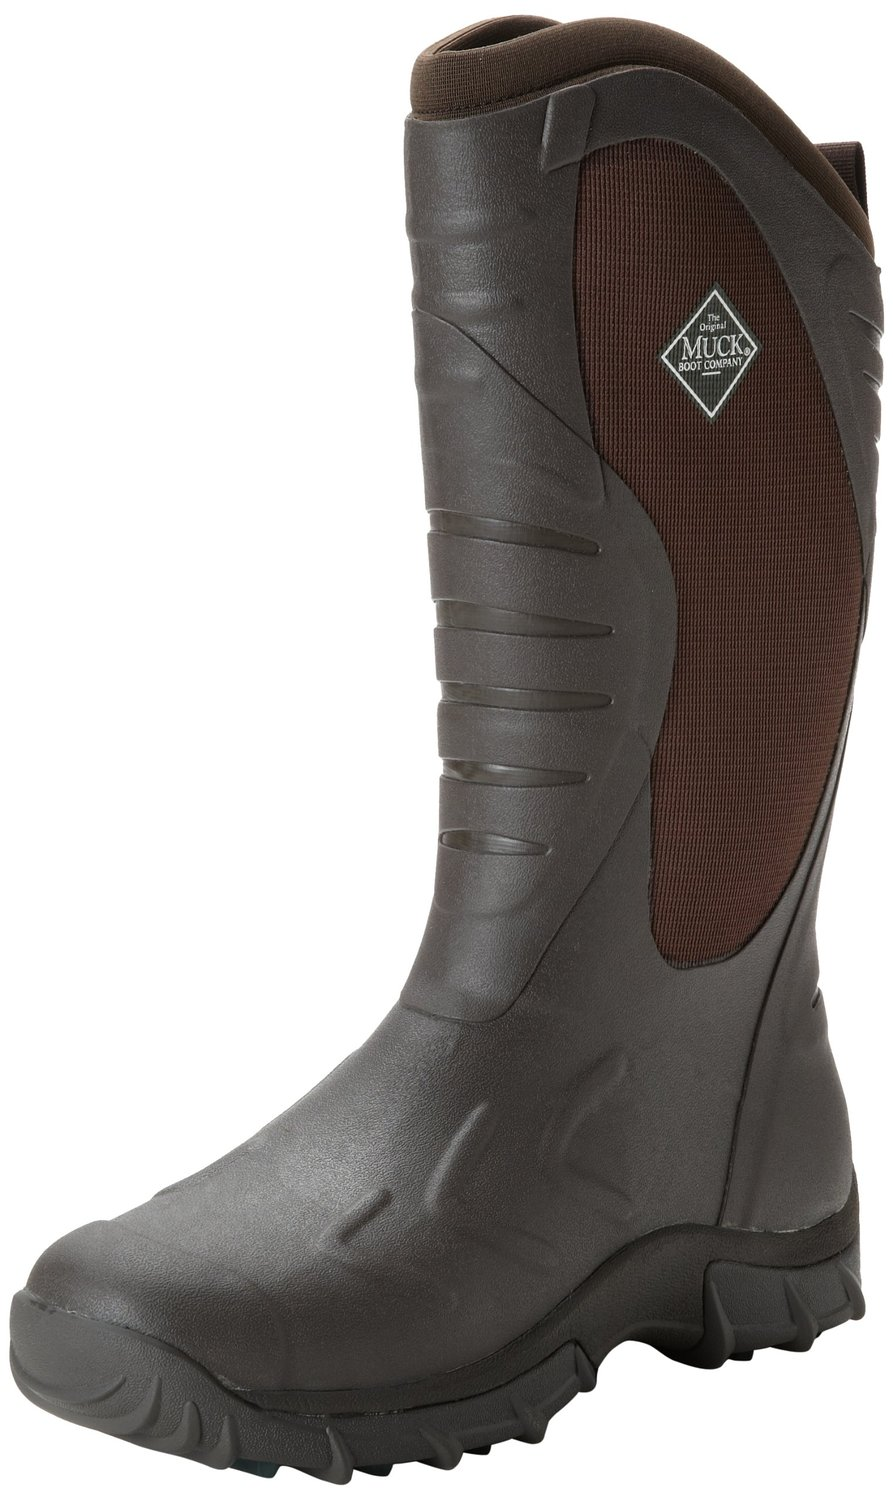 MuckBoots Men's Pursuit Stealth Hunting Boot